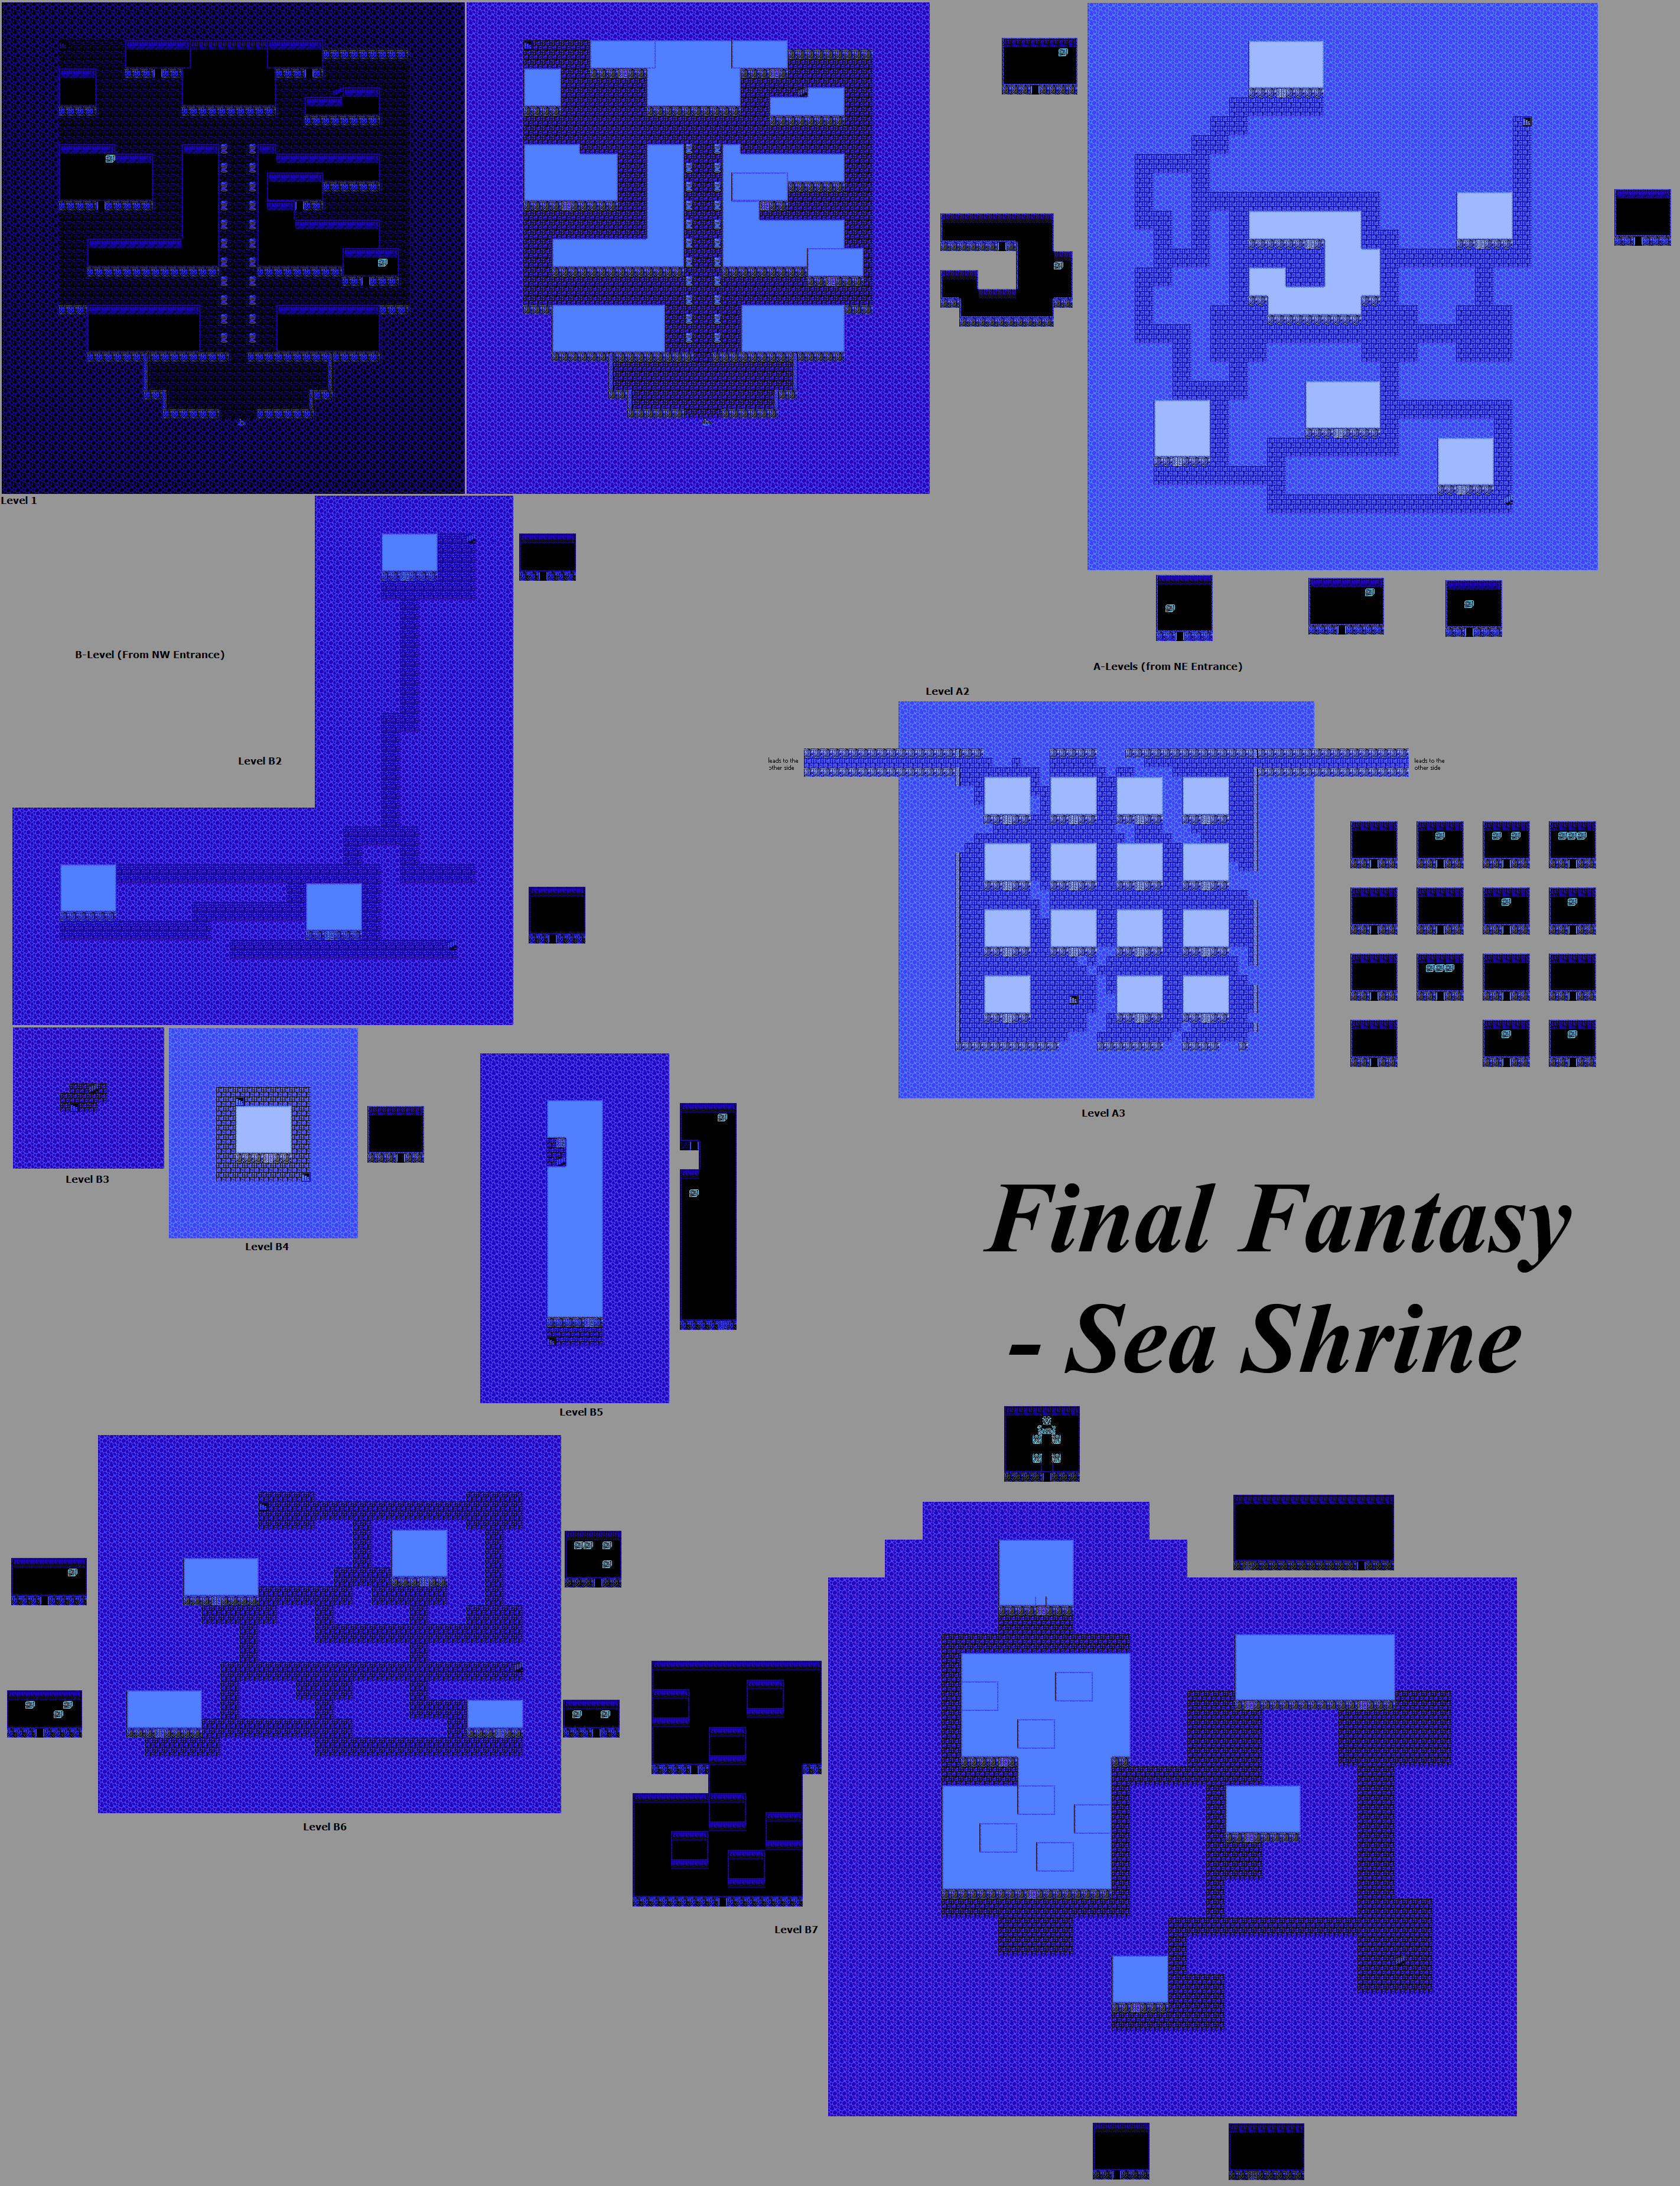 Final Fantasy - Sea Shrine